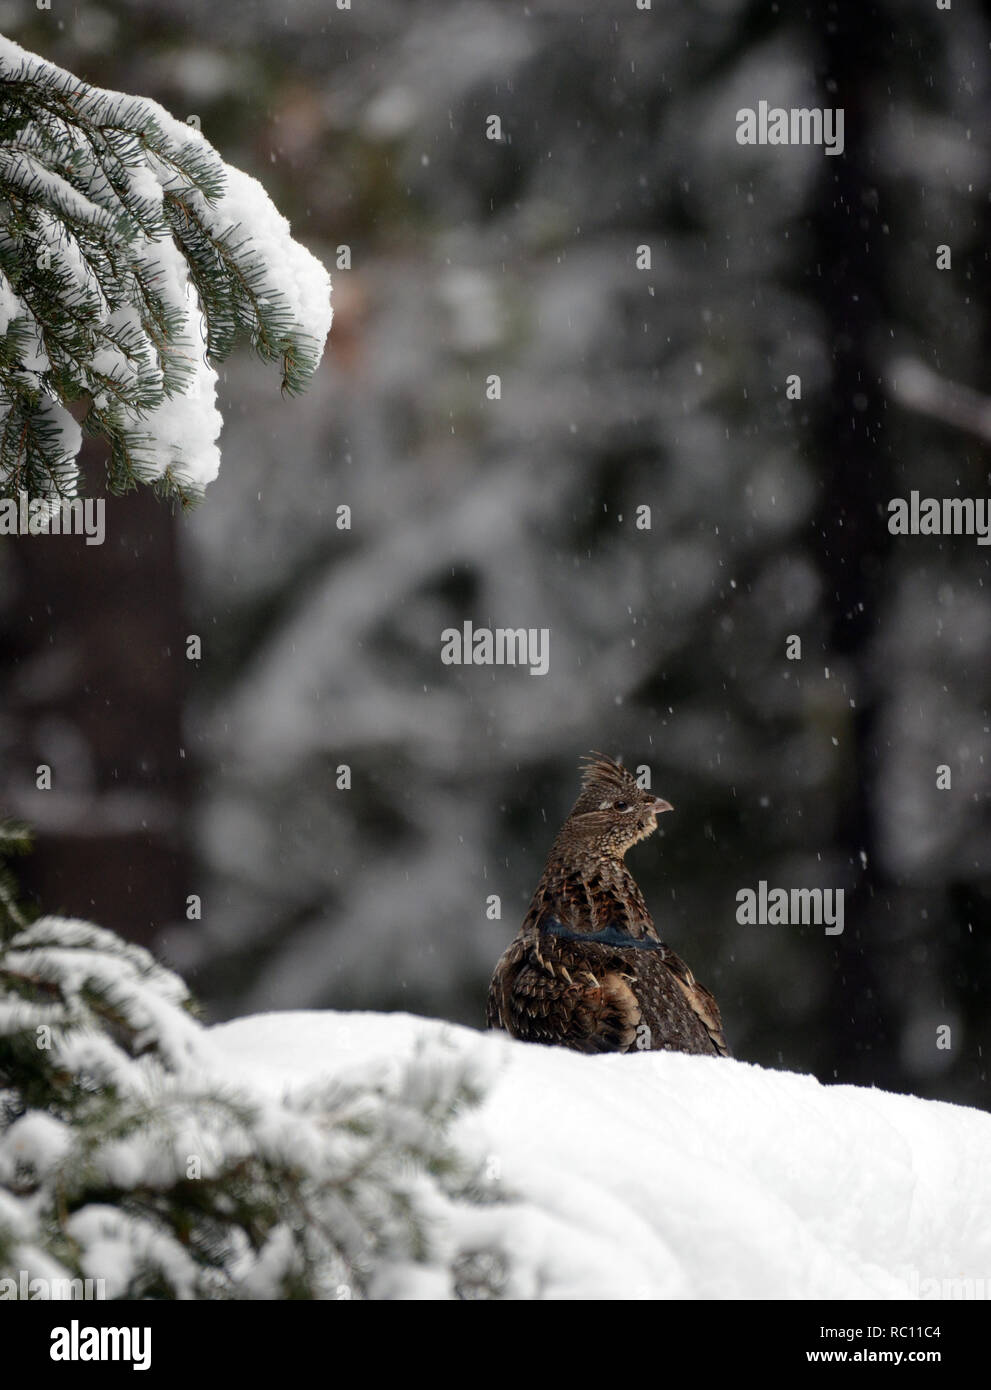 Ruffed grouse in a conifer forest during a snowstorm in winter. Yaak Valley in the Purcell Mountains, northwest Montana. - Stock Image